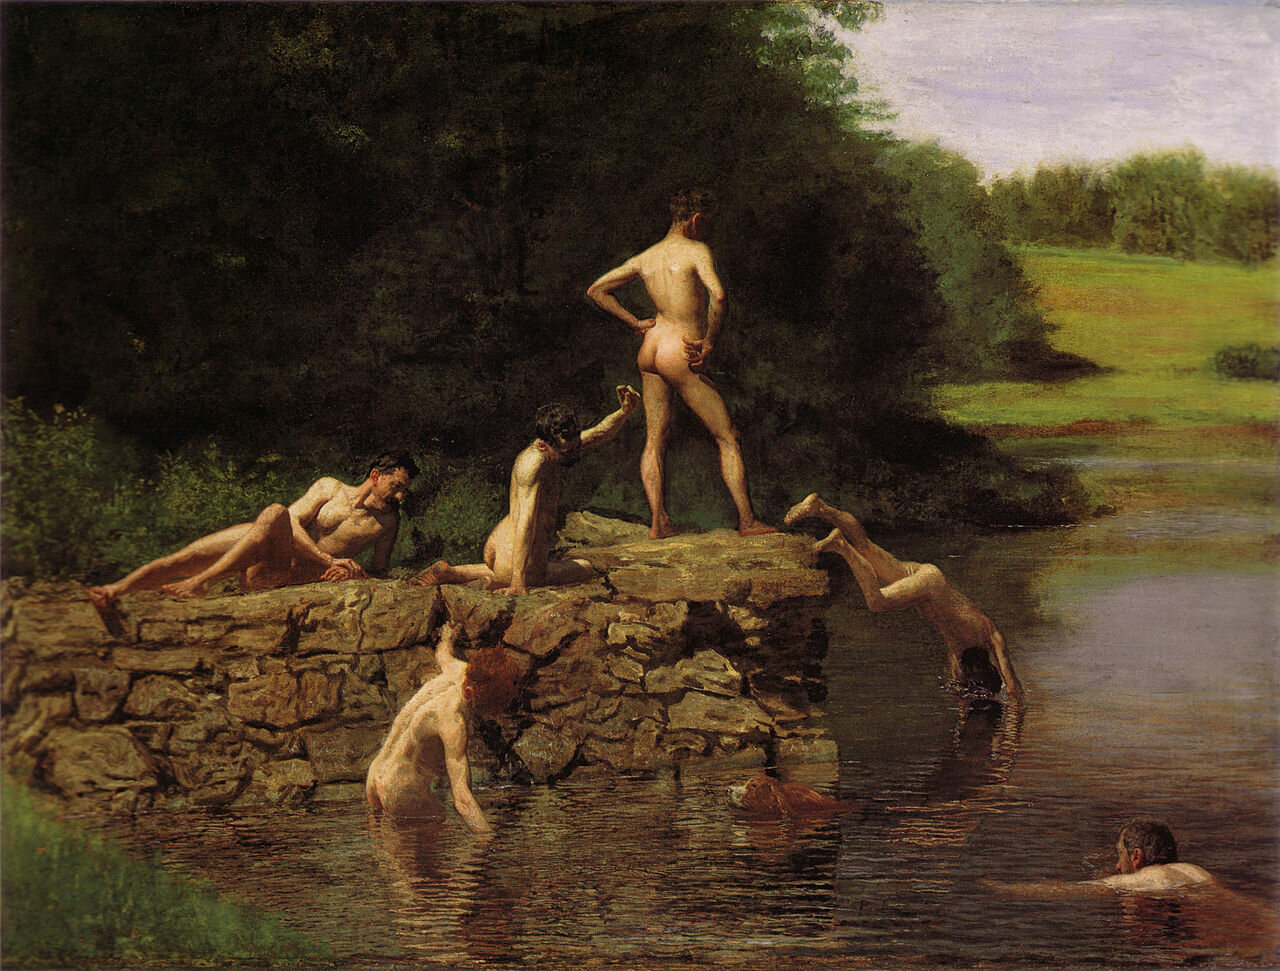 This painting was painted using the pictures of his art students bathing in the nude by Thomas Eakins (1844–1916)_Amon Carter Museum of American Art